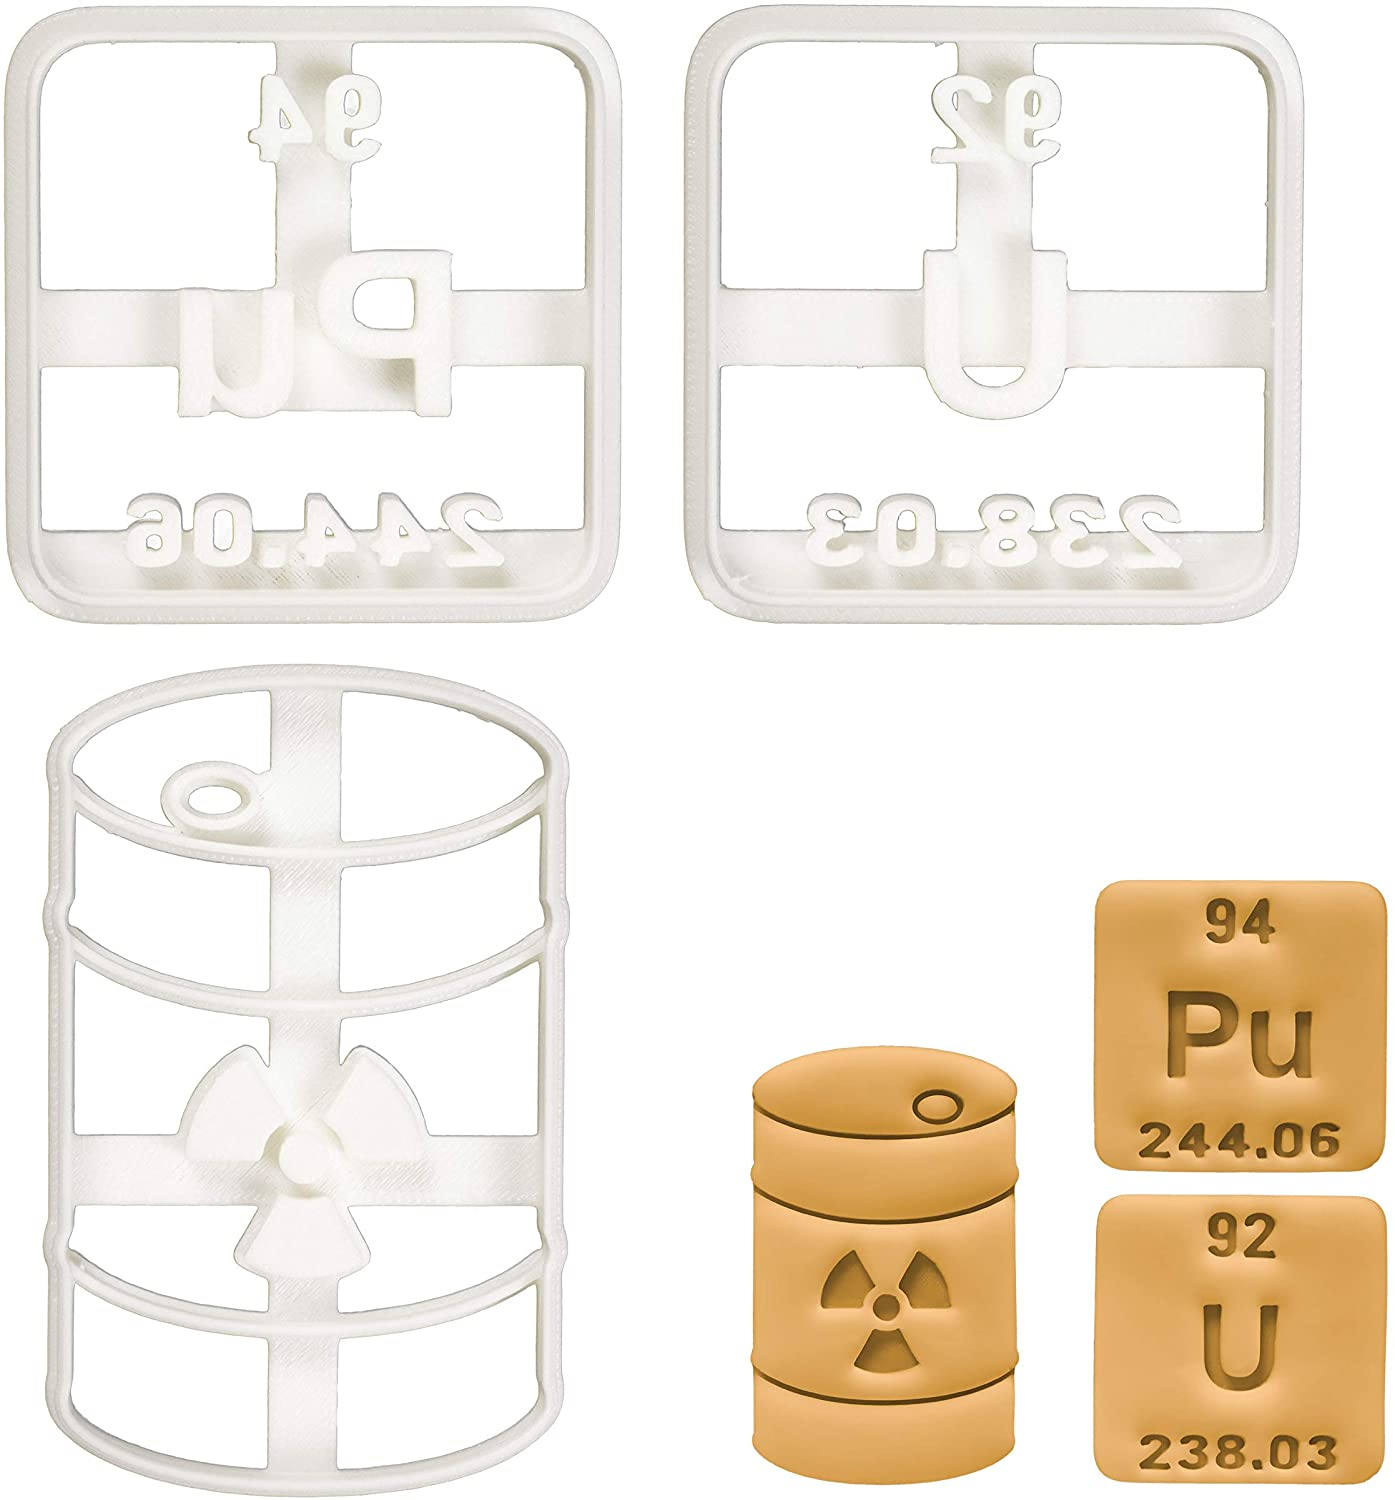 Set of 3 Radioactive themed cookie cutters (Designs: Nuclear Waste, Plutonium, Uranium periodic table element), 3 pieces